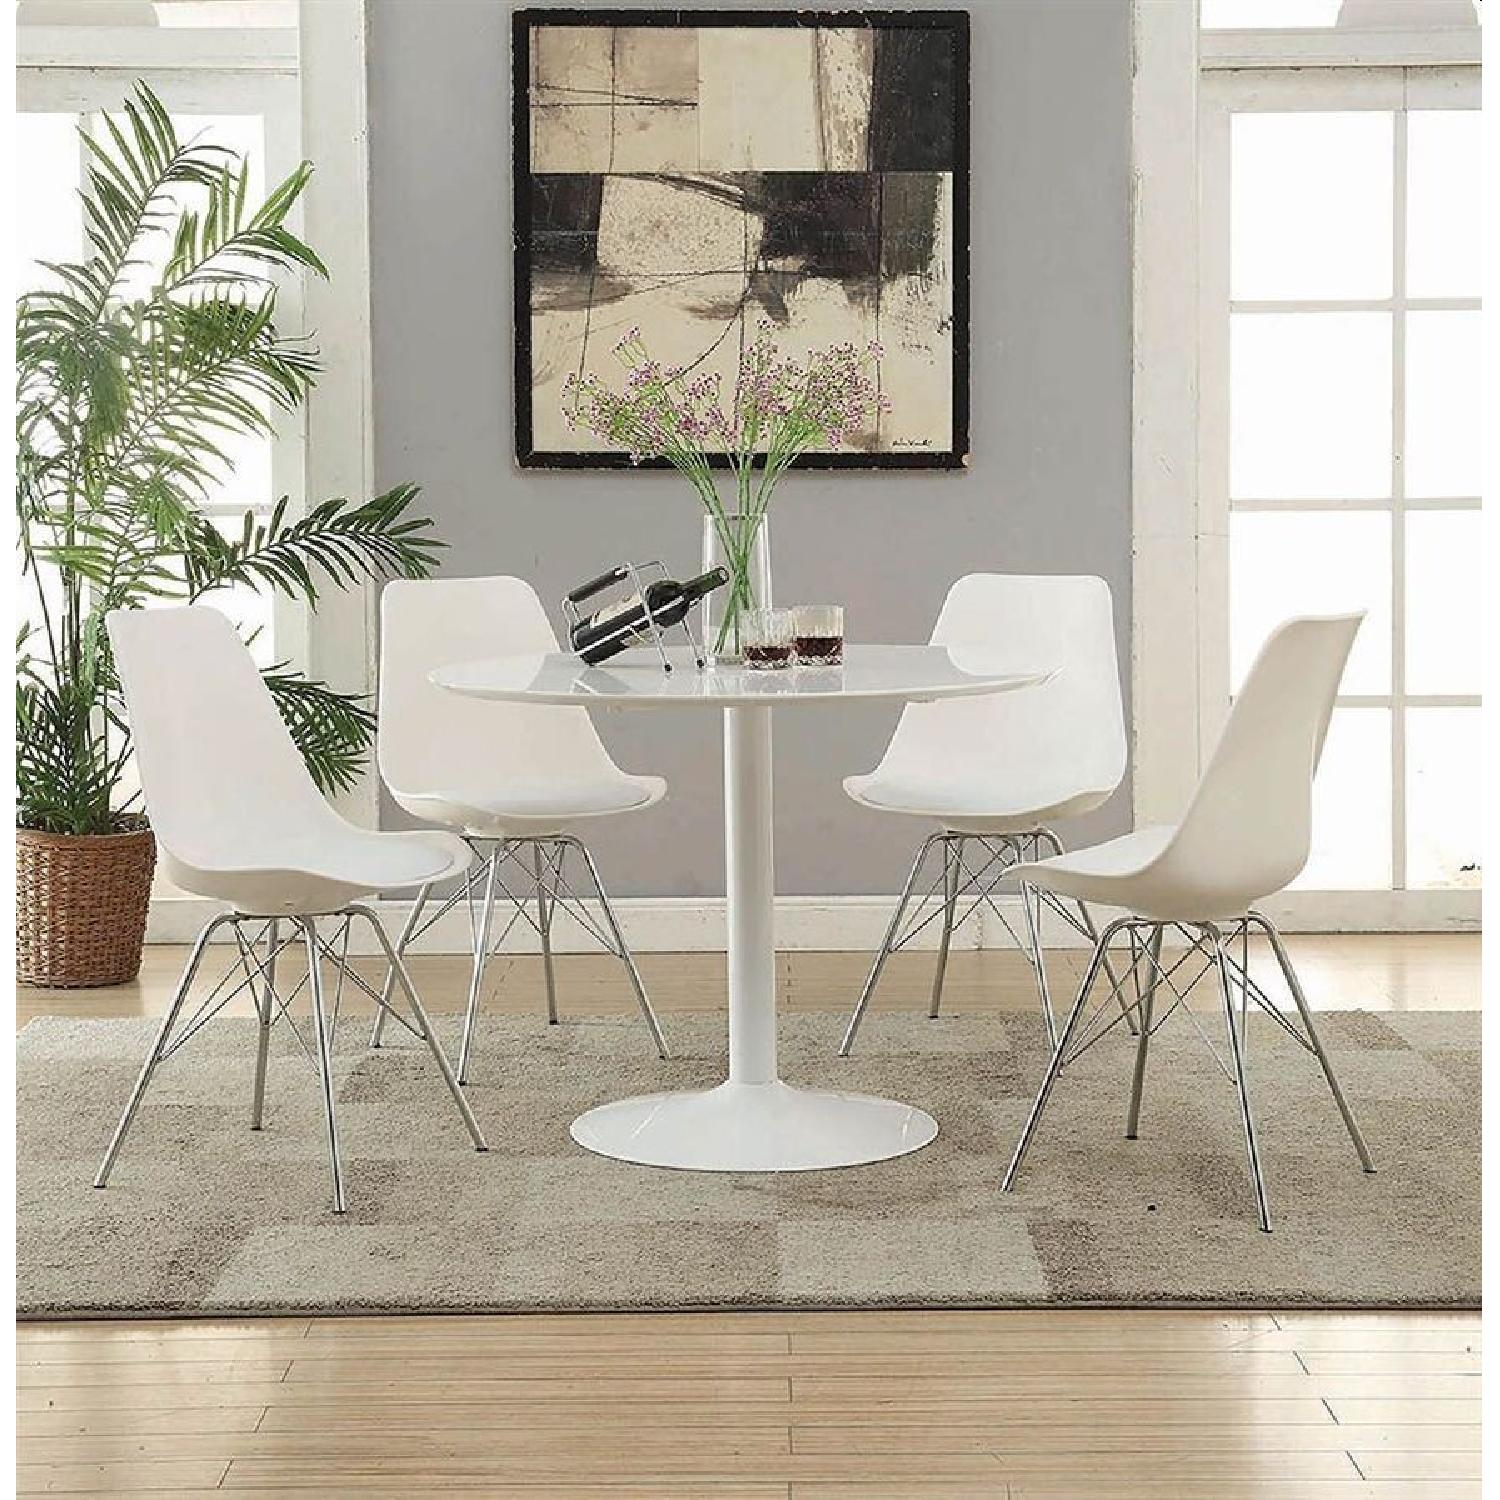 Mid Century Modern Style Dining Table in High Gloss Finish - image-1